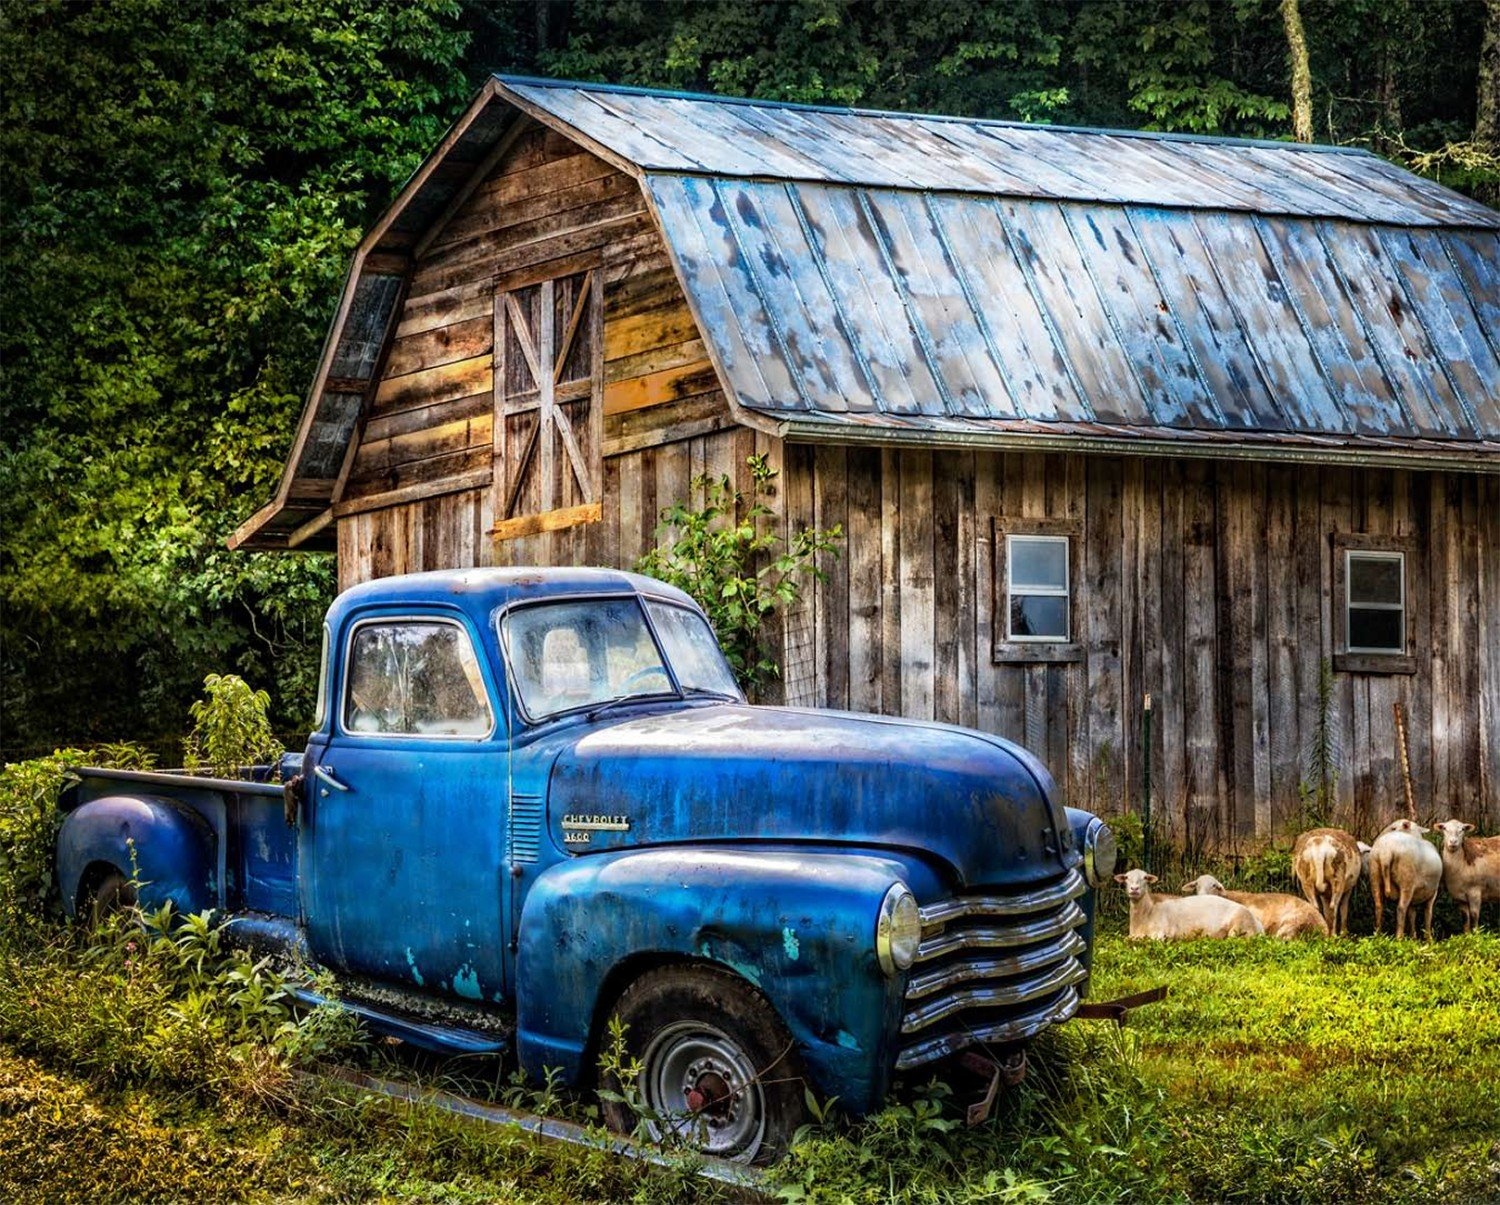 Blue Truck at the Barn Digital Panel 44X36in